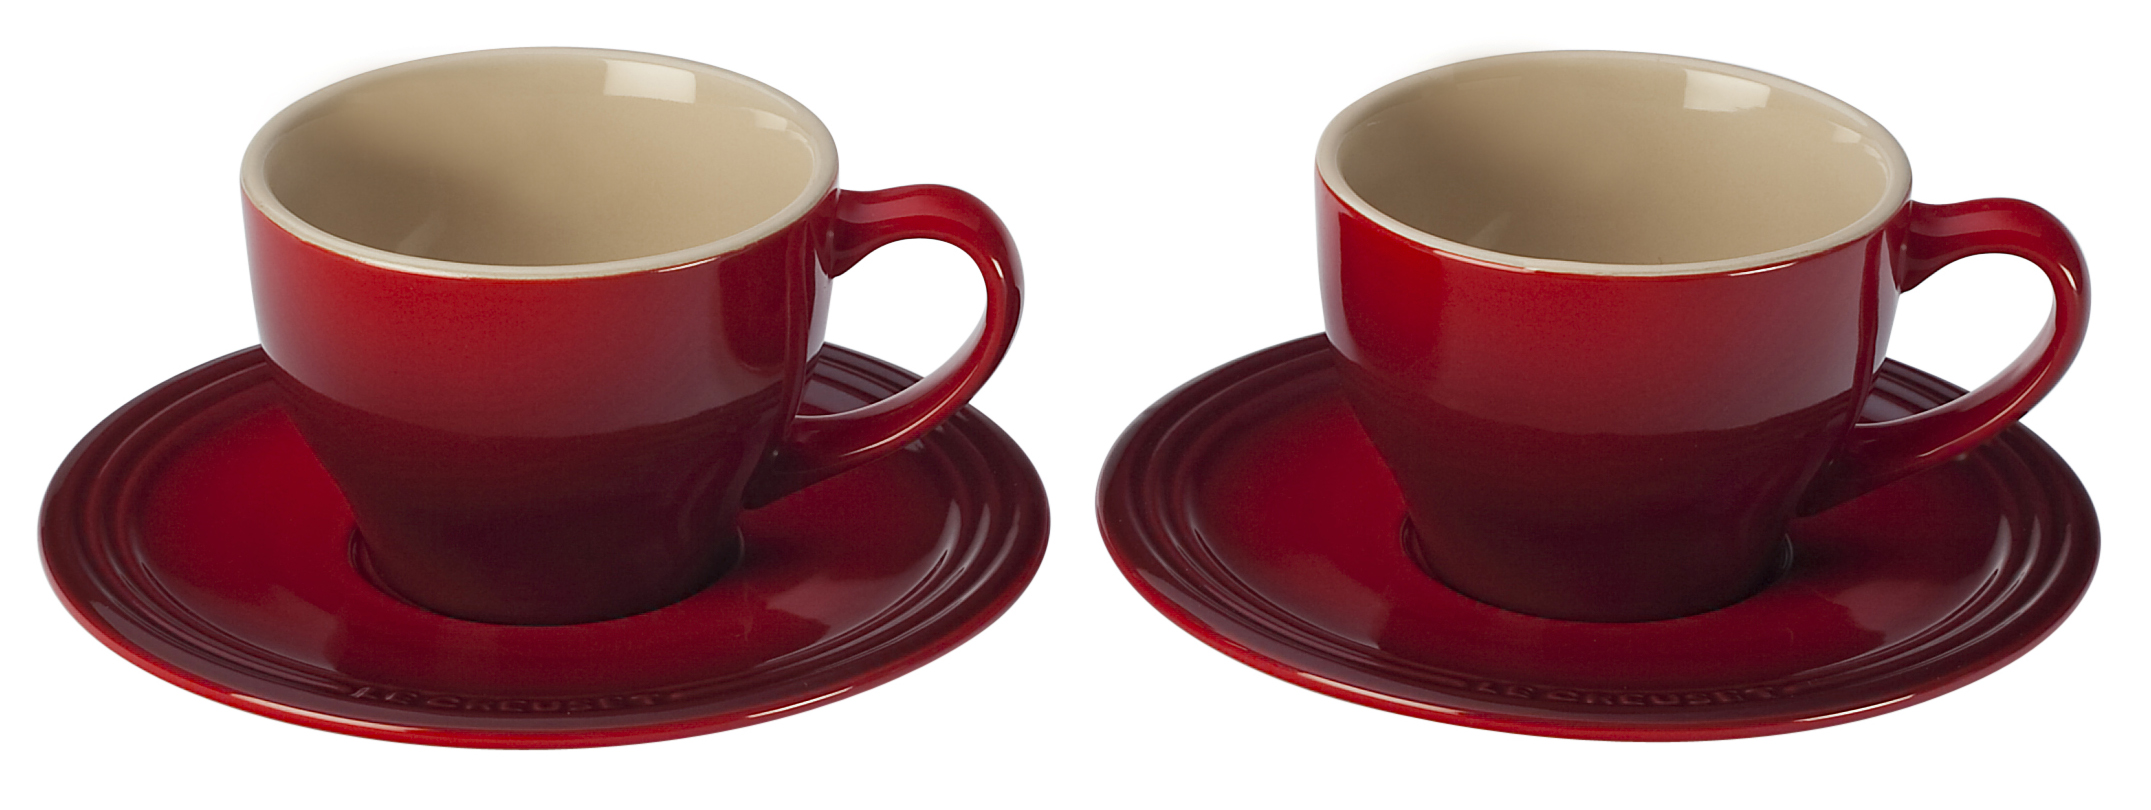 le creuset cappuccino cups. Black Bedroom Furniture Sets. Home Design Ideas